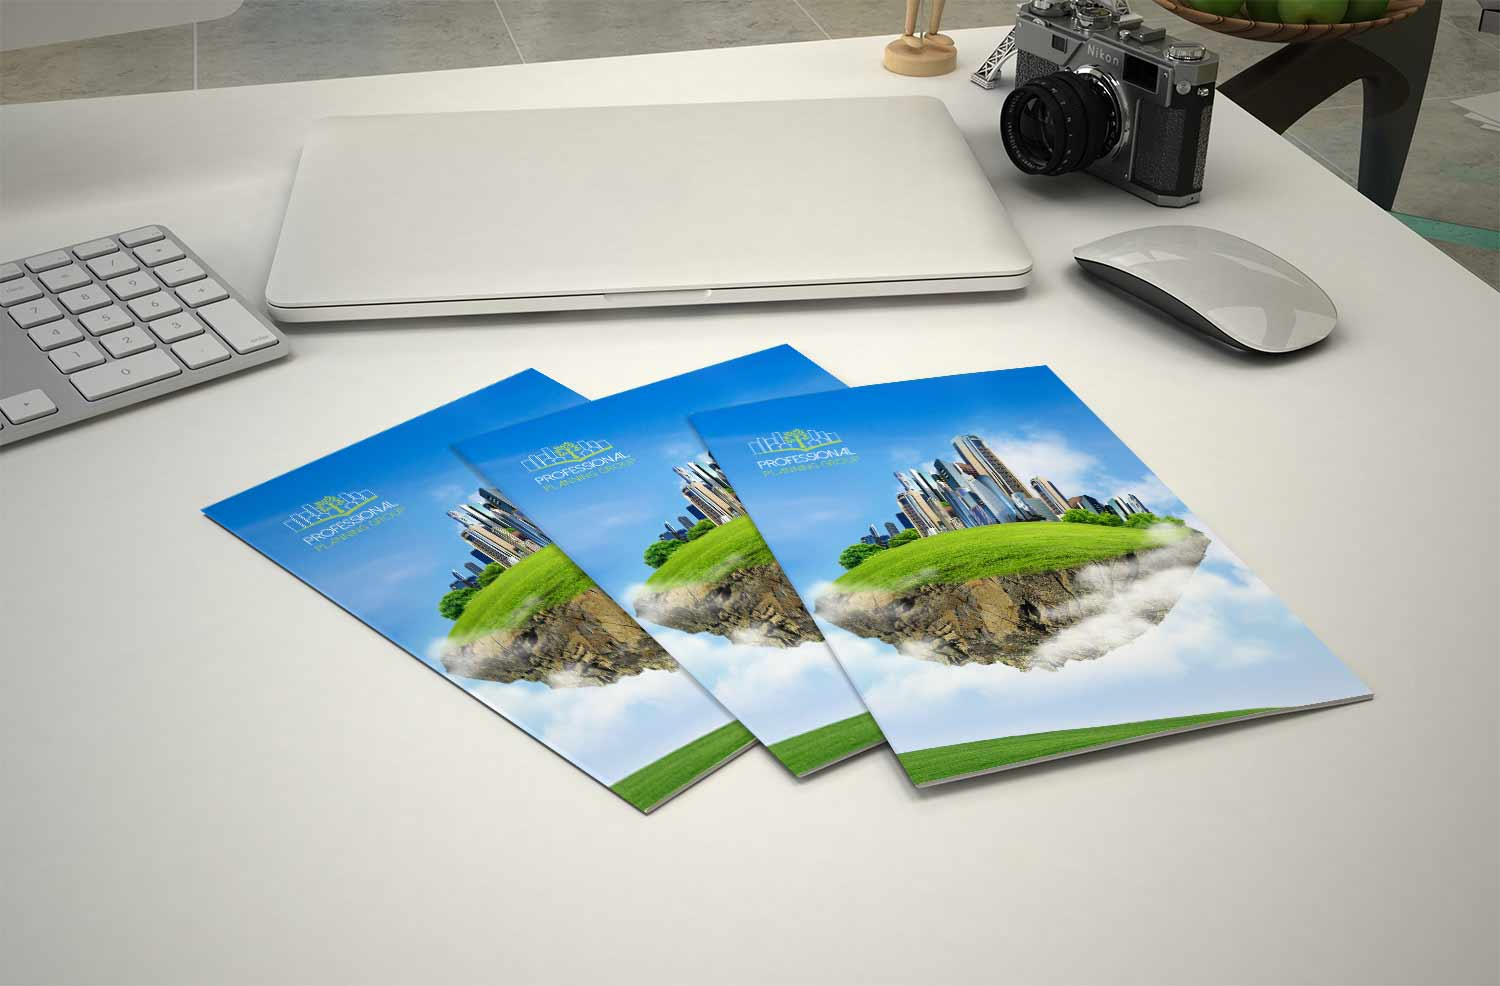 professional planning folders by graphic design brisbane studio